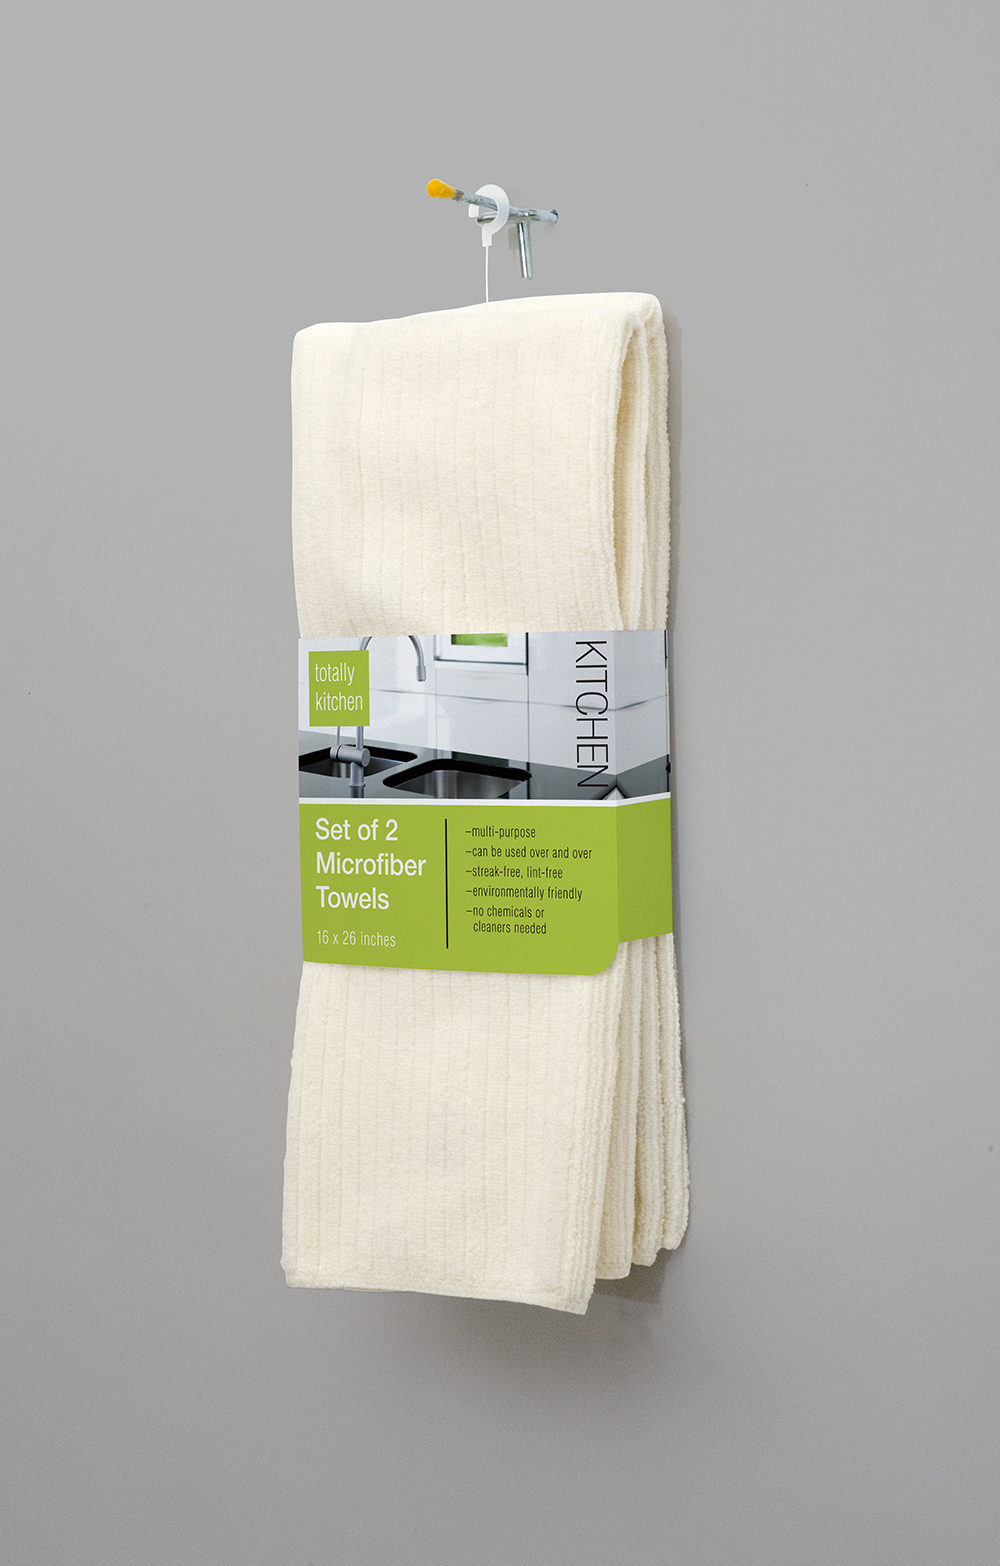 TotallyKitchen-MicrofiberTowel-wrap-card-design